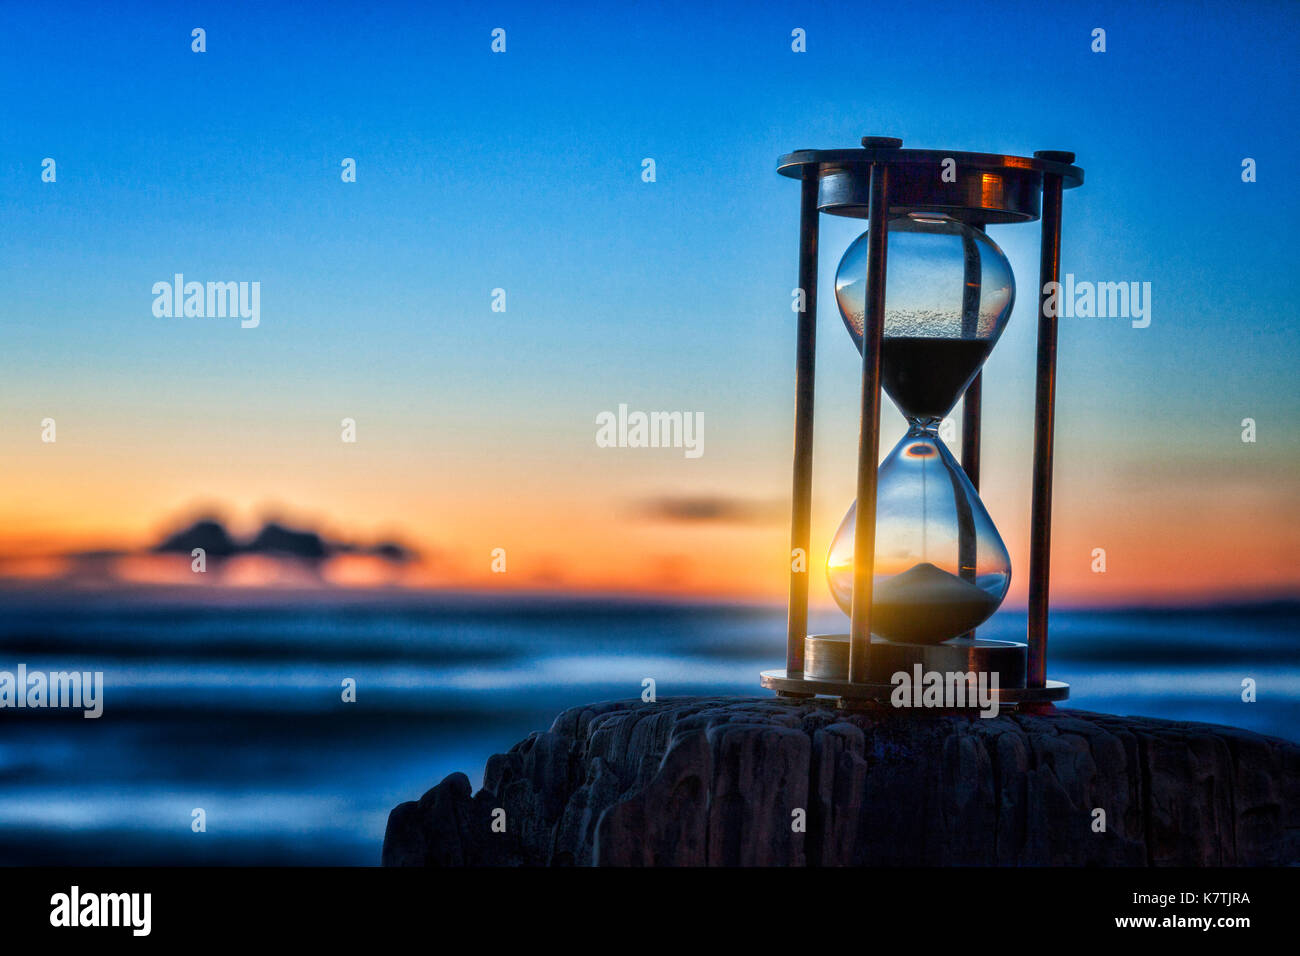 Hourglass or sand timer in front of a beatiful clear sunrise or sunset. - Stock Image